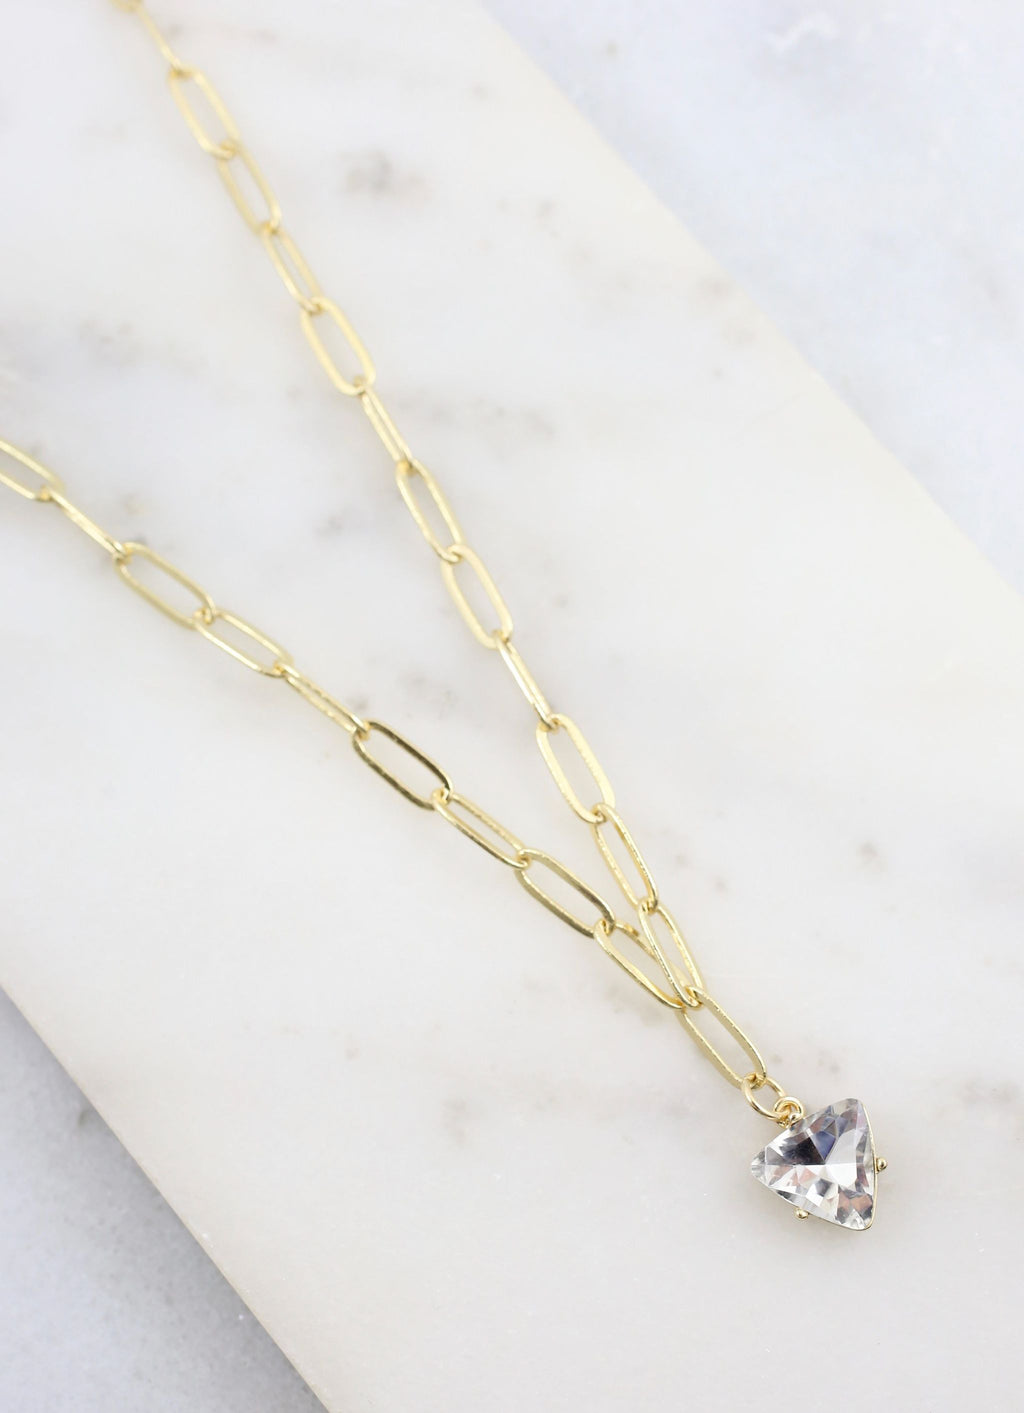 Pate Chain Link Necklace With Cz Pendant Gold - Caroline Hill